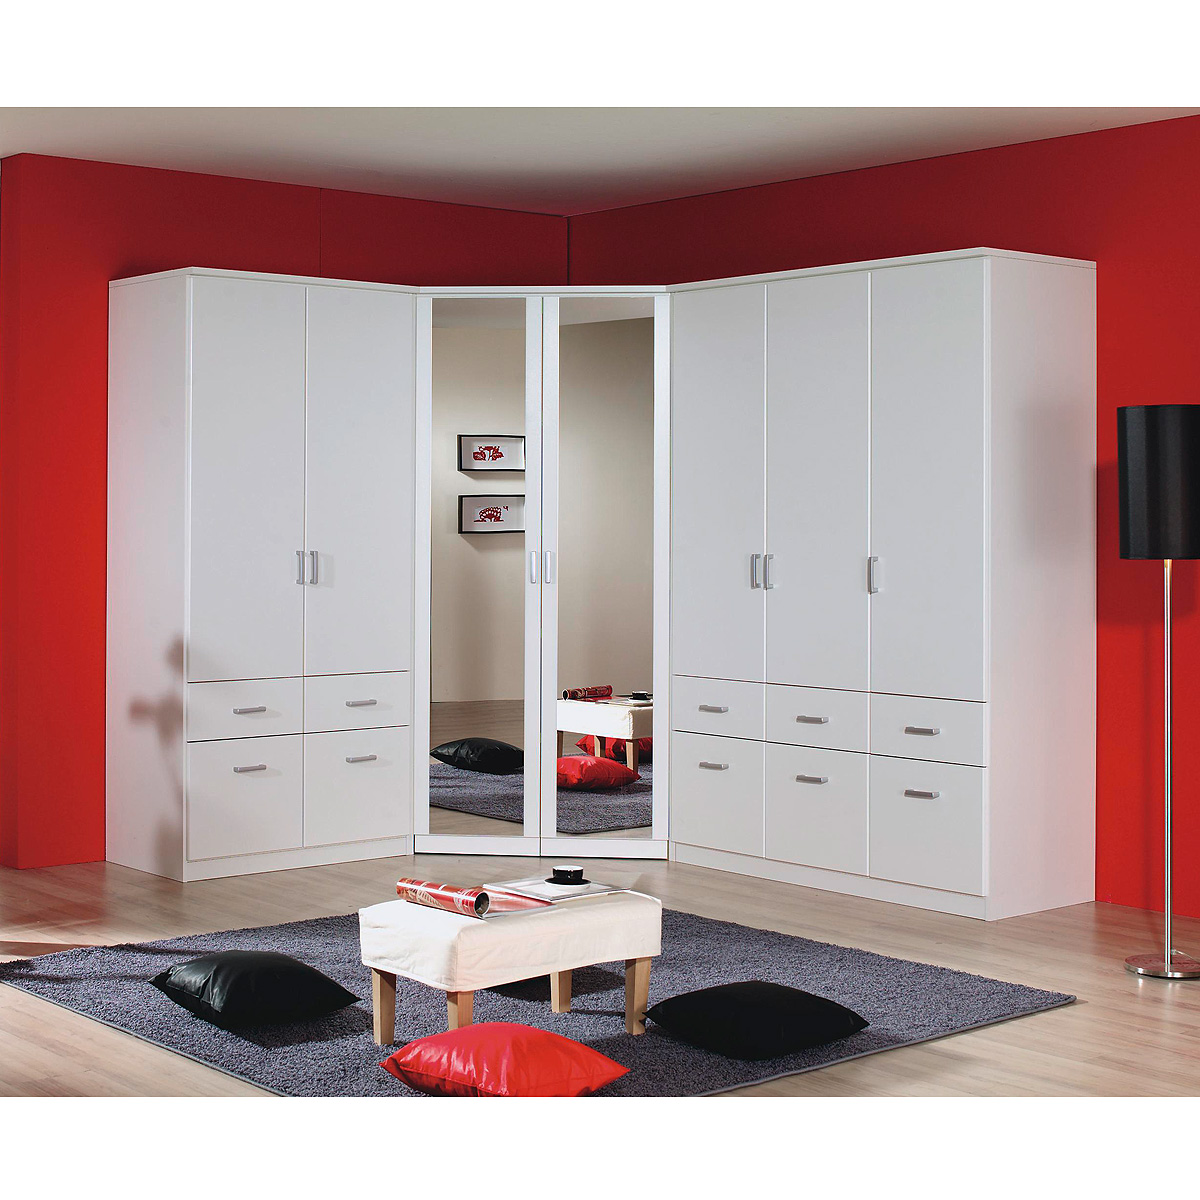 eckschrank bremen kleiderschrank w scheschrank begehbar in wei mit spiegel ebay. Black Bedroom Furniture Sets. Home Design Ideas